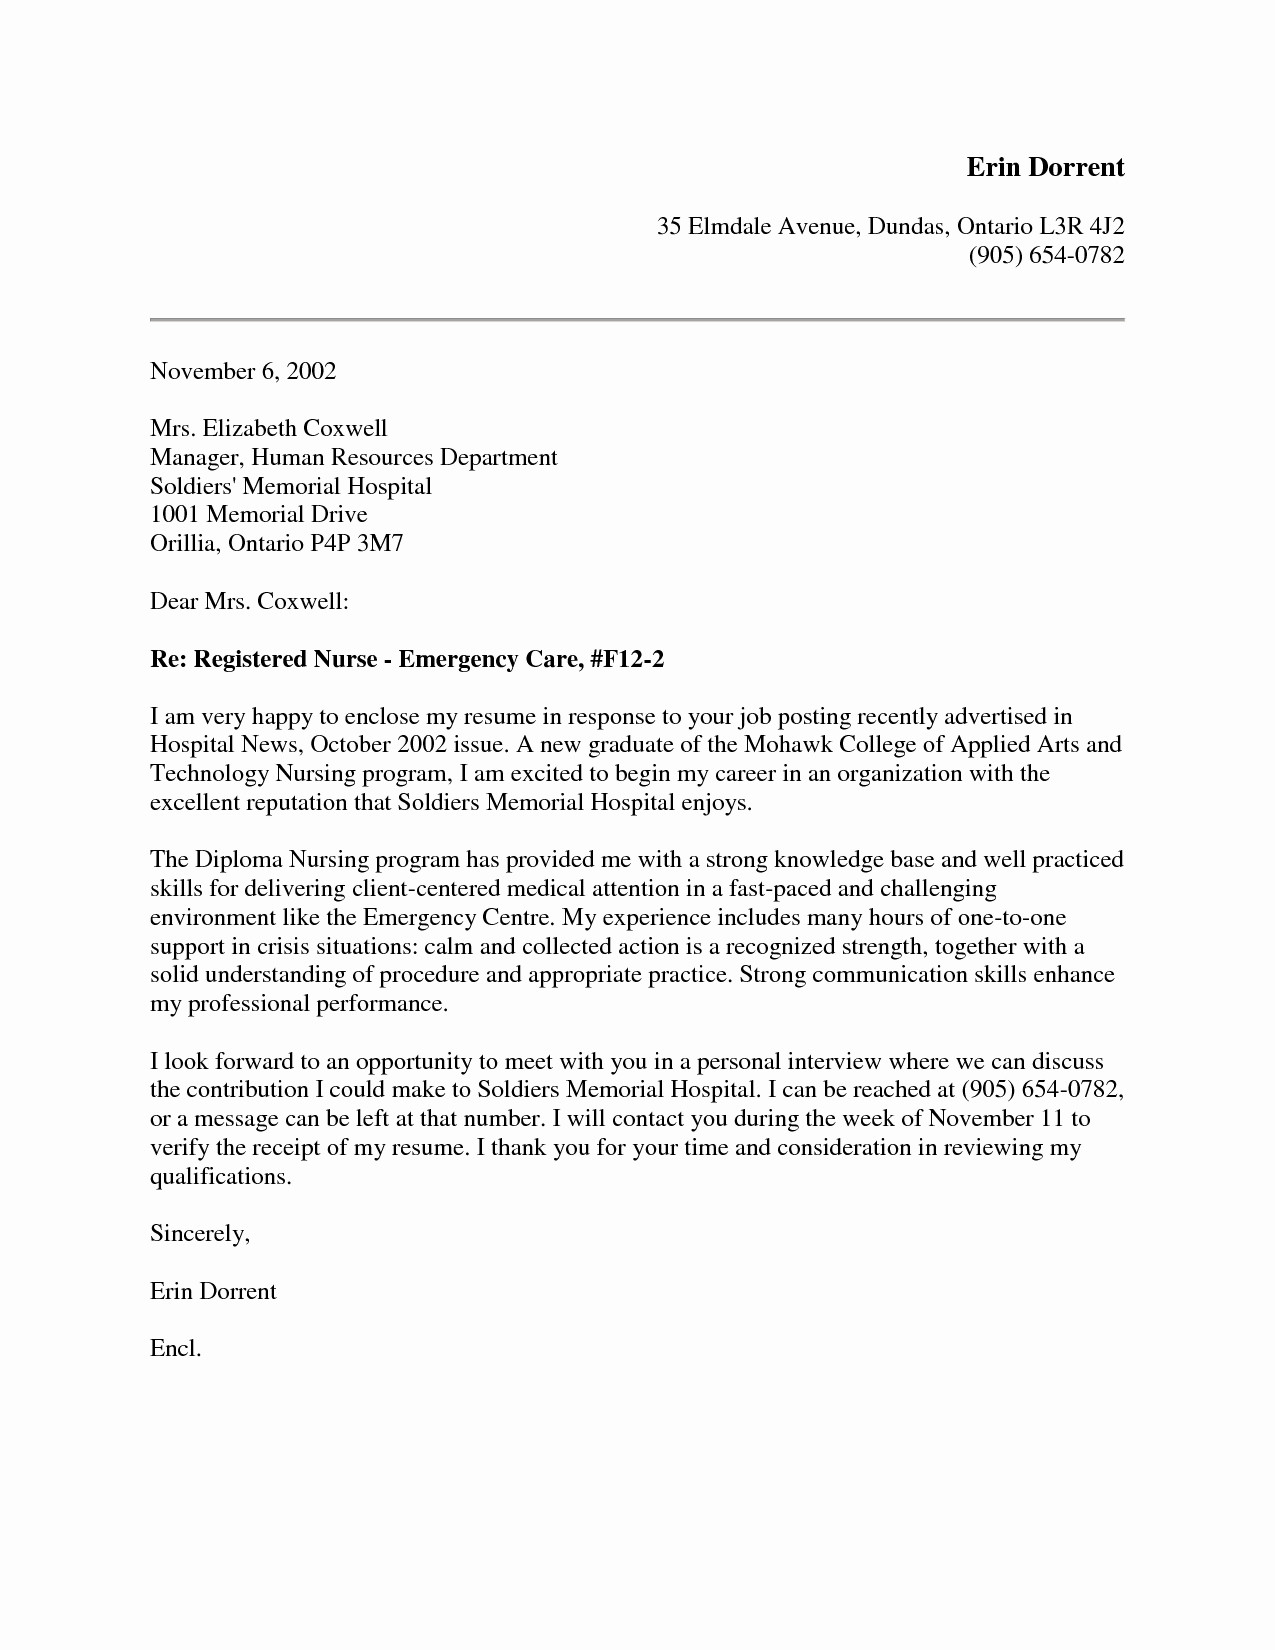 Hospital Letter Template - 36 Lovely Nurse Practitioner Cover Letter Sample